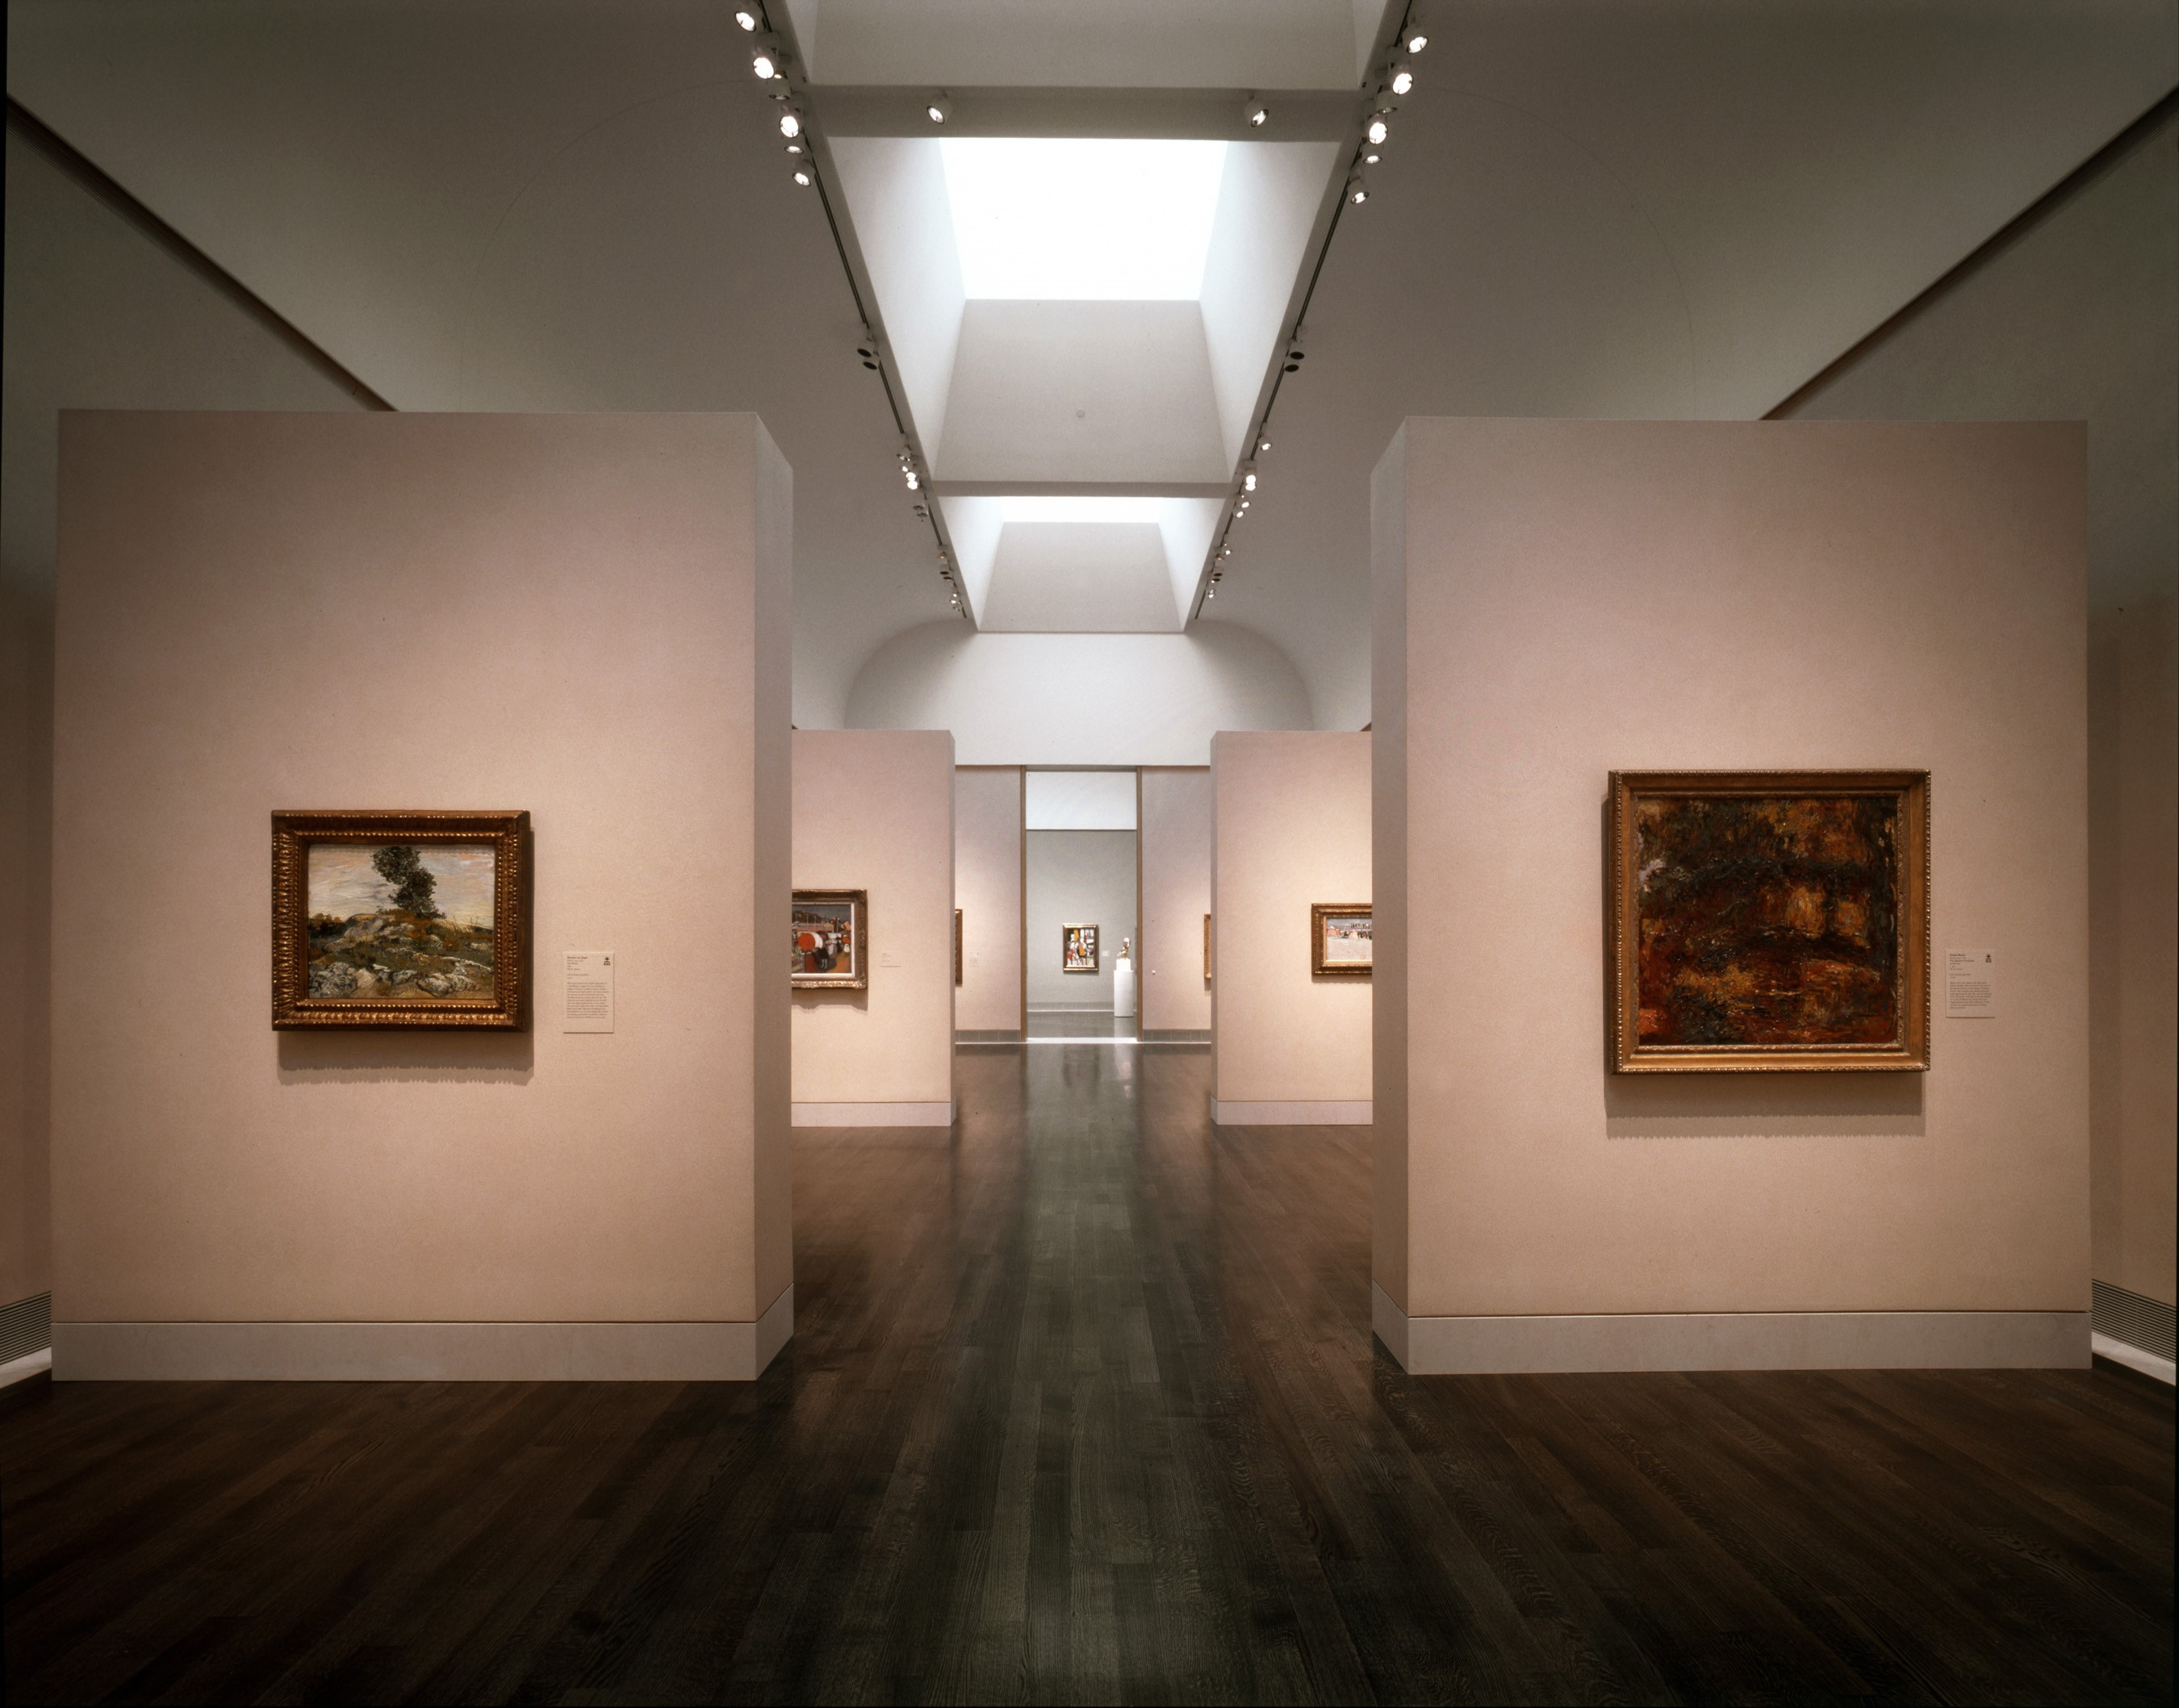 The mfah an architectural history the museum of fine - Interior design internships houston ...